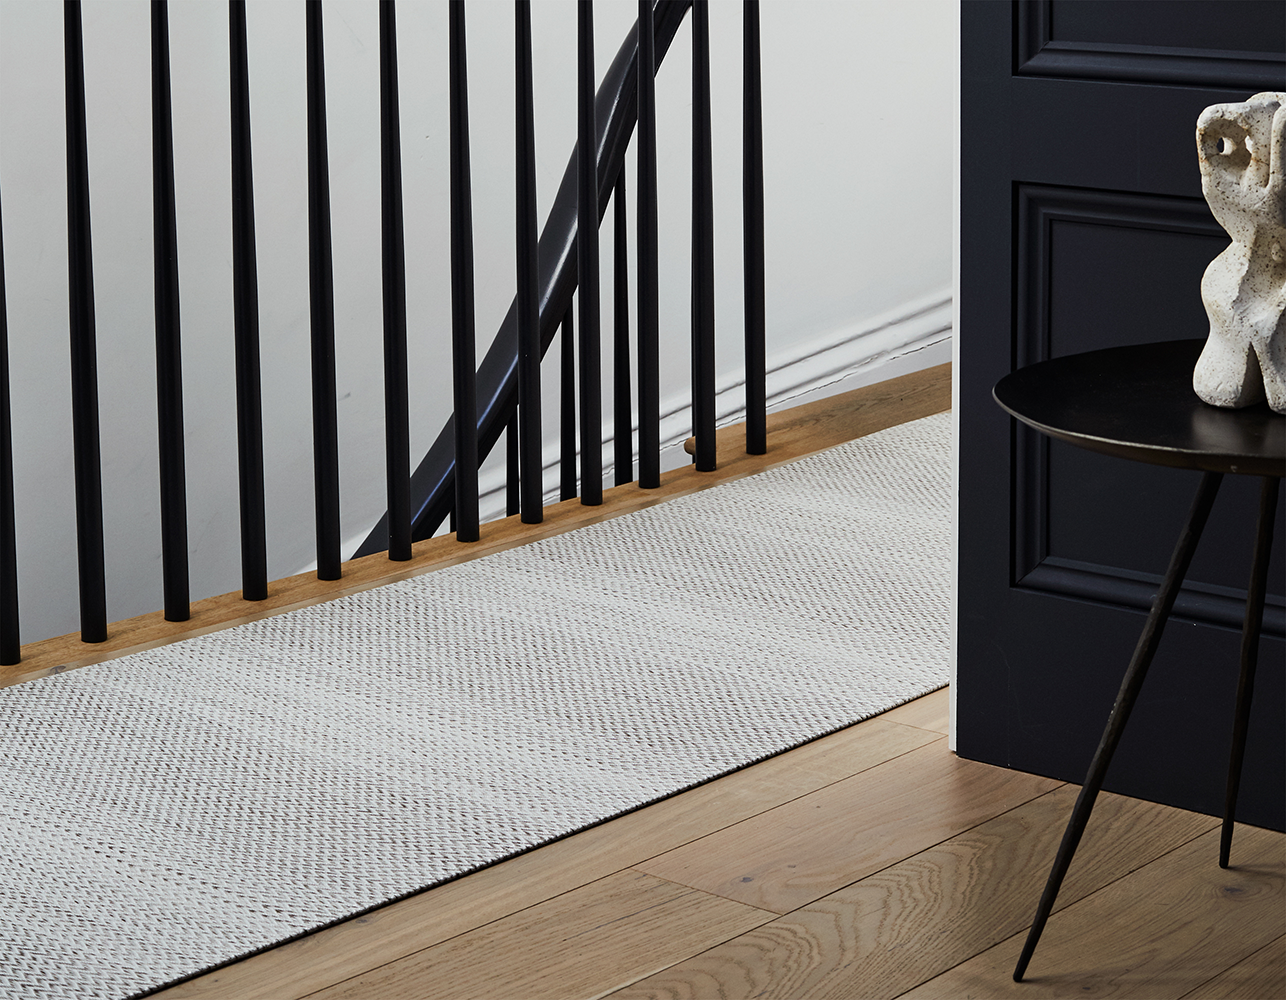 Quill Woven Floor Mats in Various Colors & Sizes – BURKE DECOR